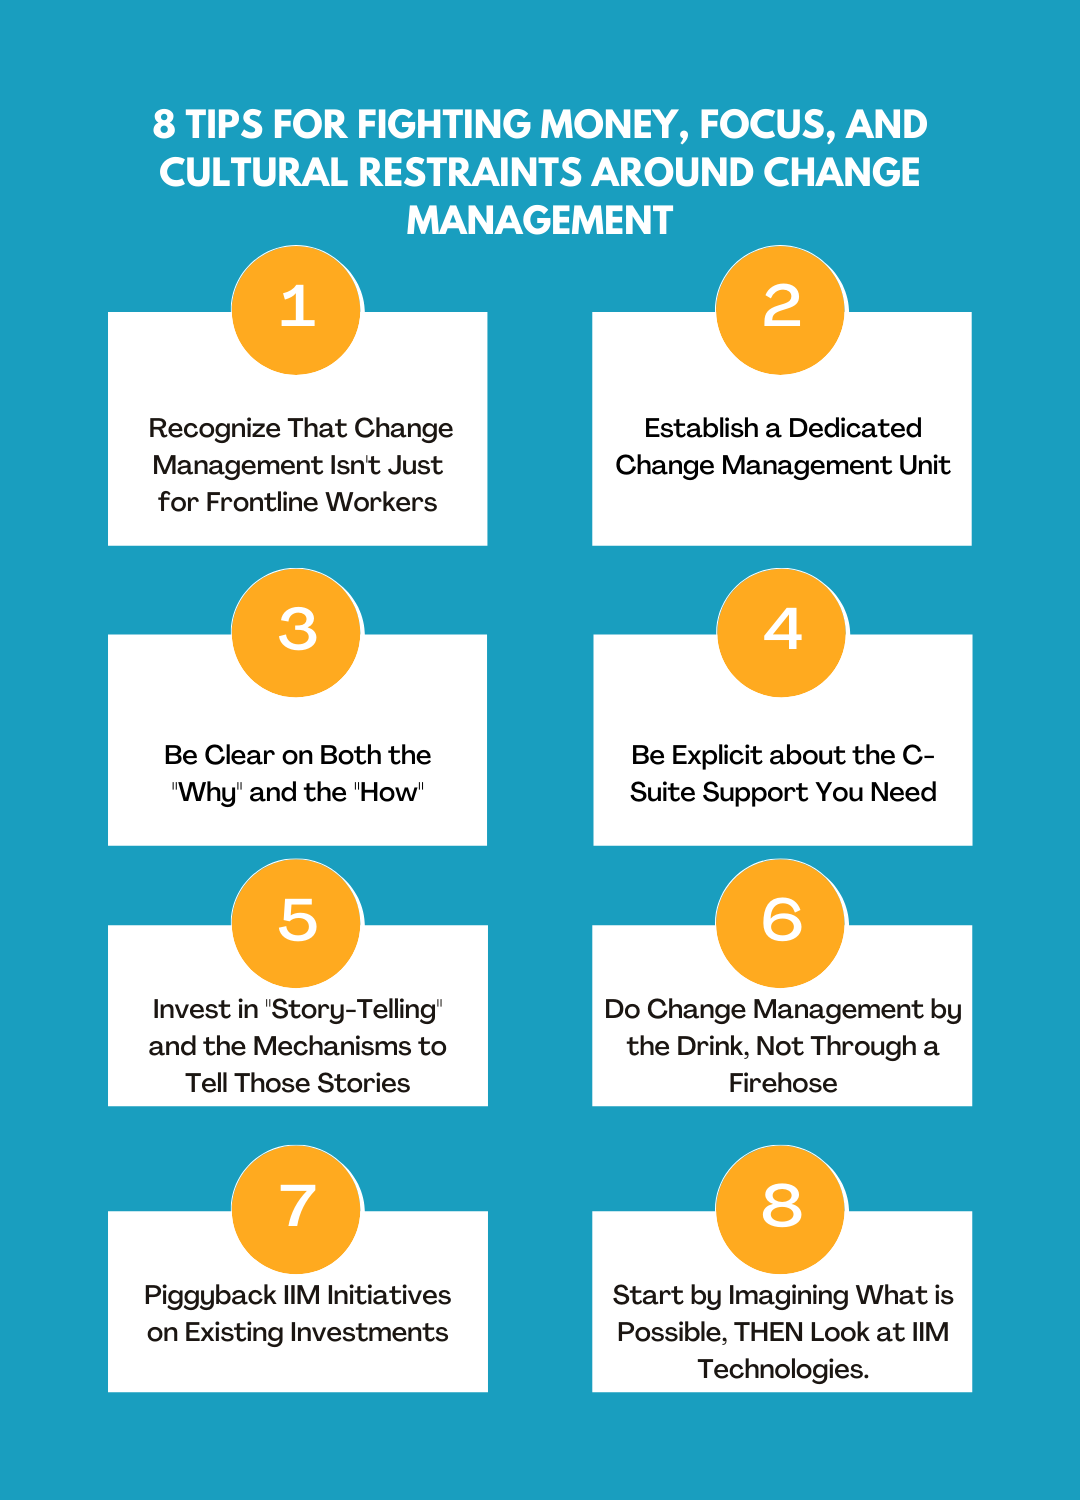 8 Tips for Fighting Money, Focus, and Cultural Restraints Around Change Management Graphic